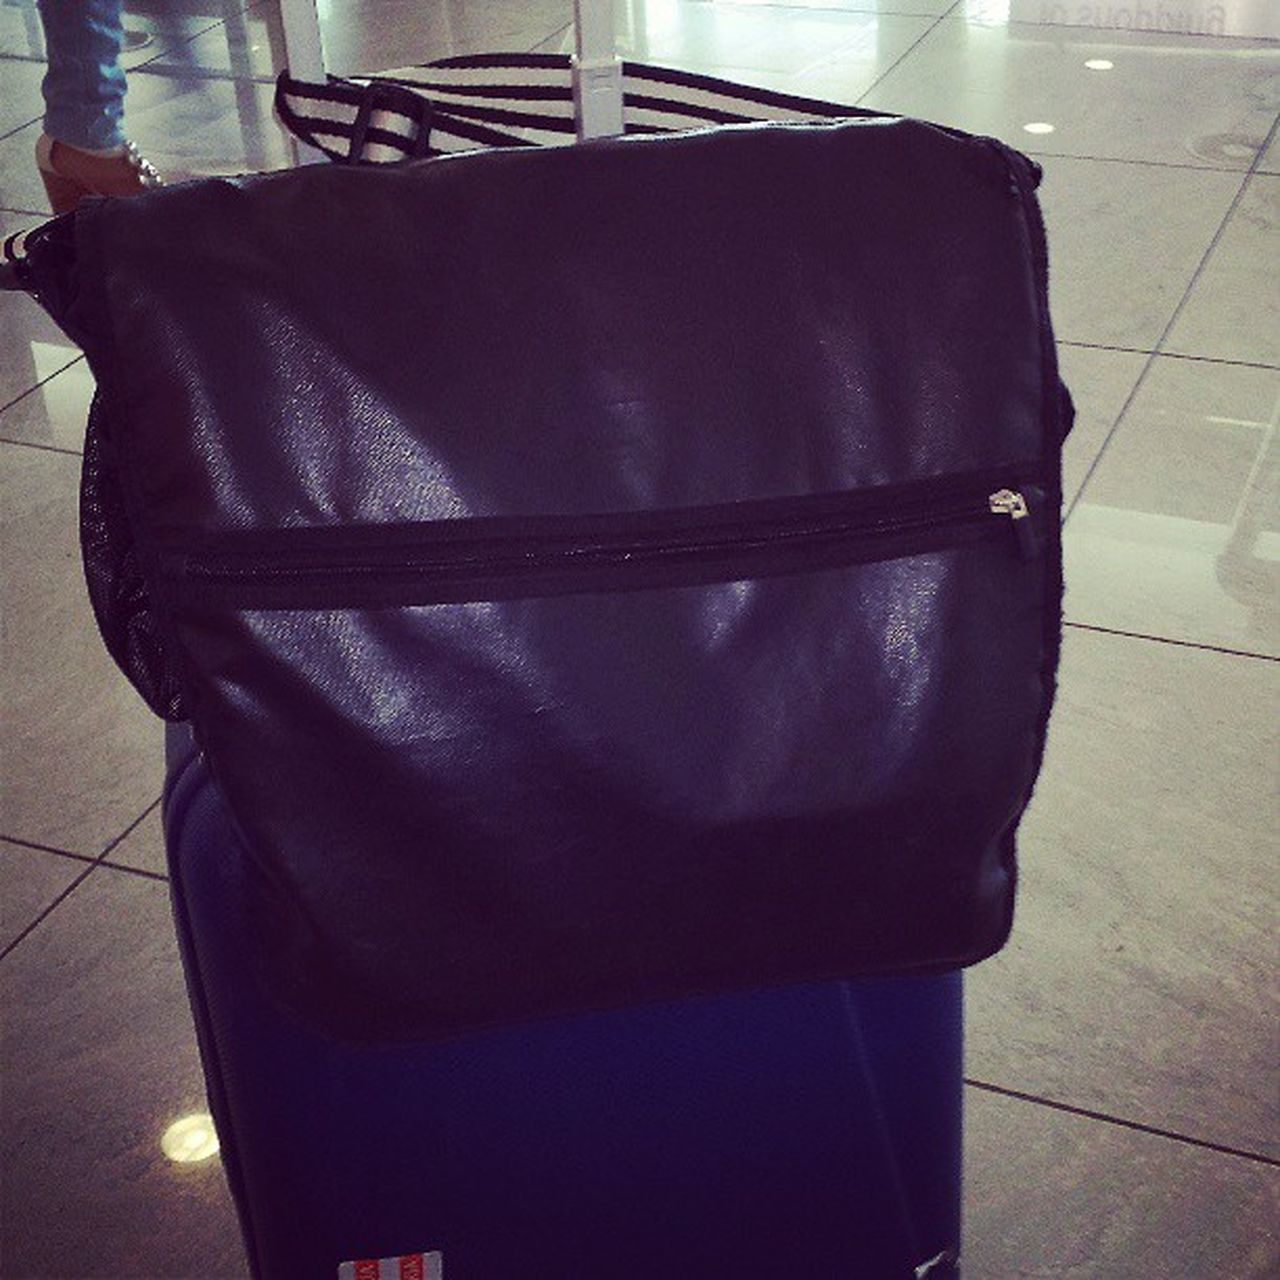 bag, indoors, luggage, no people, clothing, black color, suitcase, day, close-up